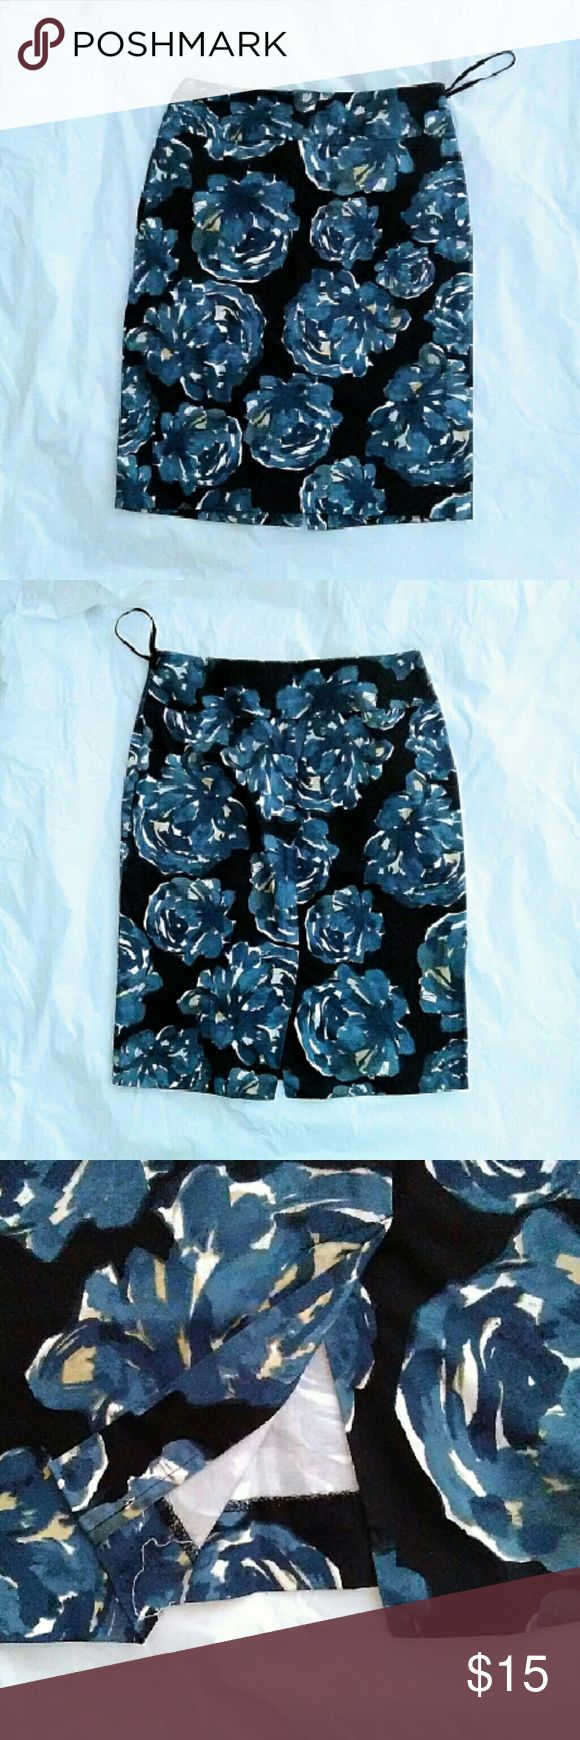 Alfani Floral Print Skirt Blue and white print on black. Slim fit skirt with small slit in the back. 96% Cotton 4%spandex. With side zipper. 22 inches long. Excellent like new condition. B2 Alfani Skirts Midi